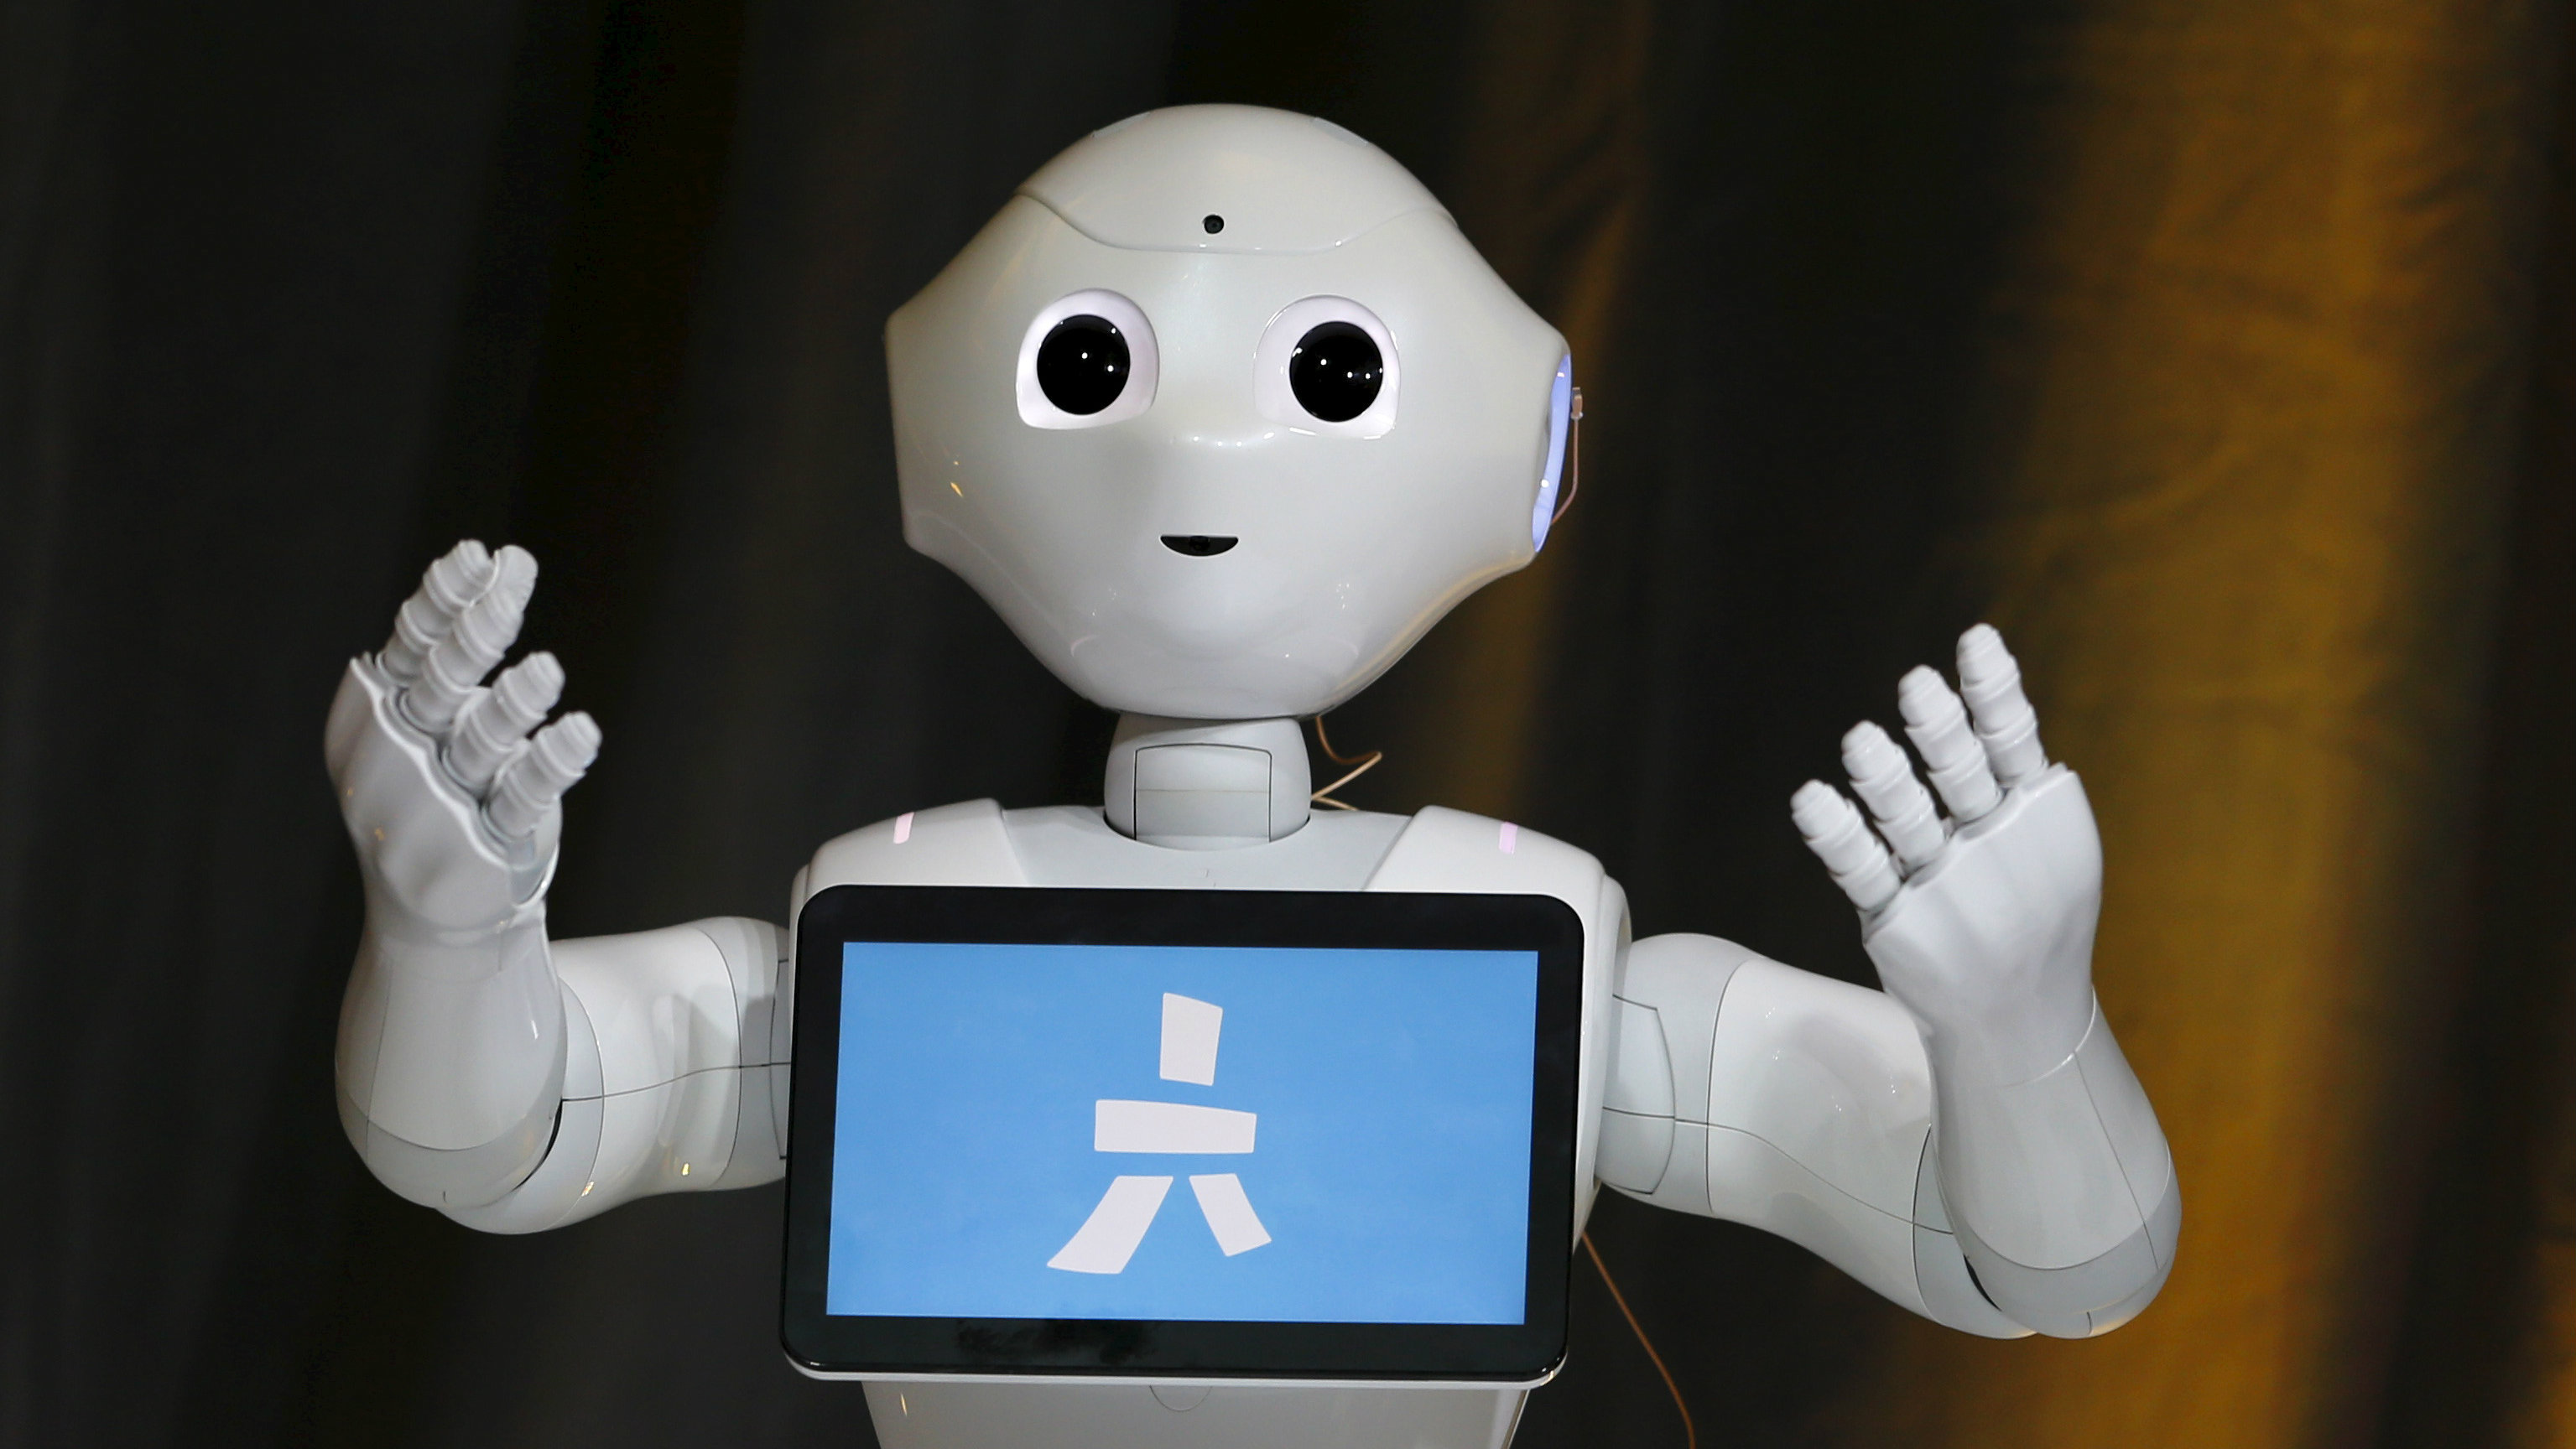 Pepper, an emotional Robot, greets conference attendees during the Wall Street Journal Digital Live.